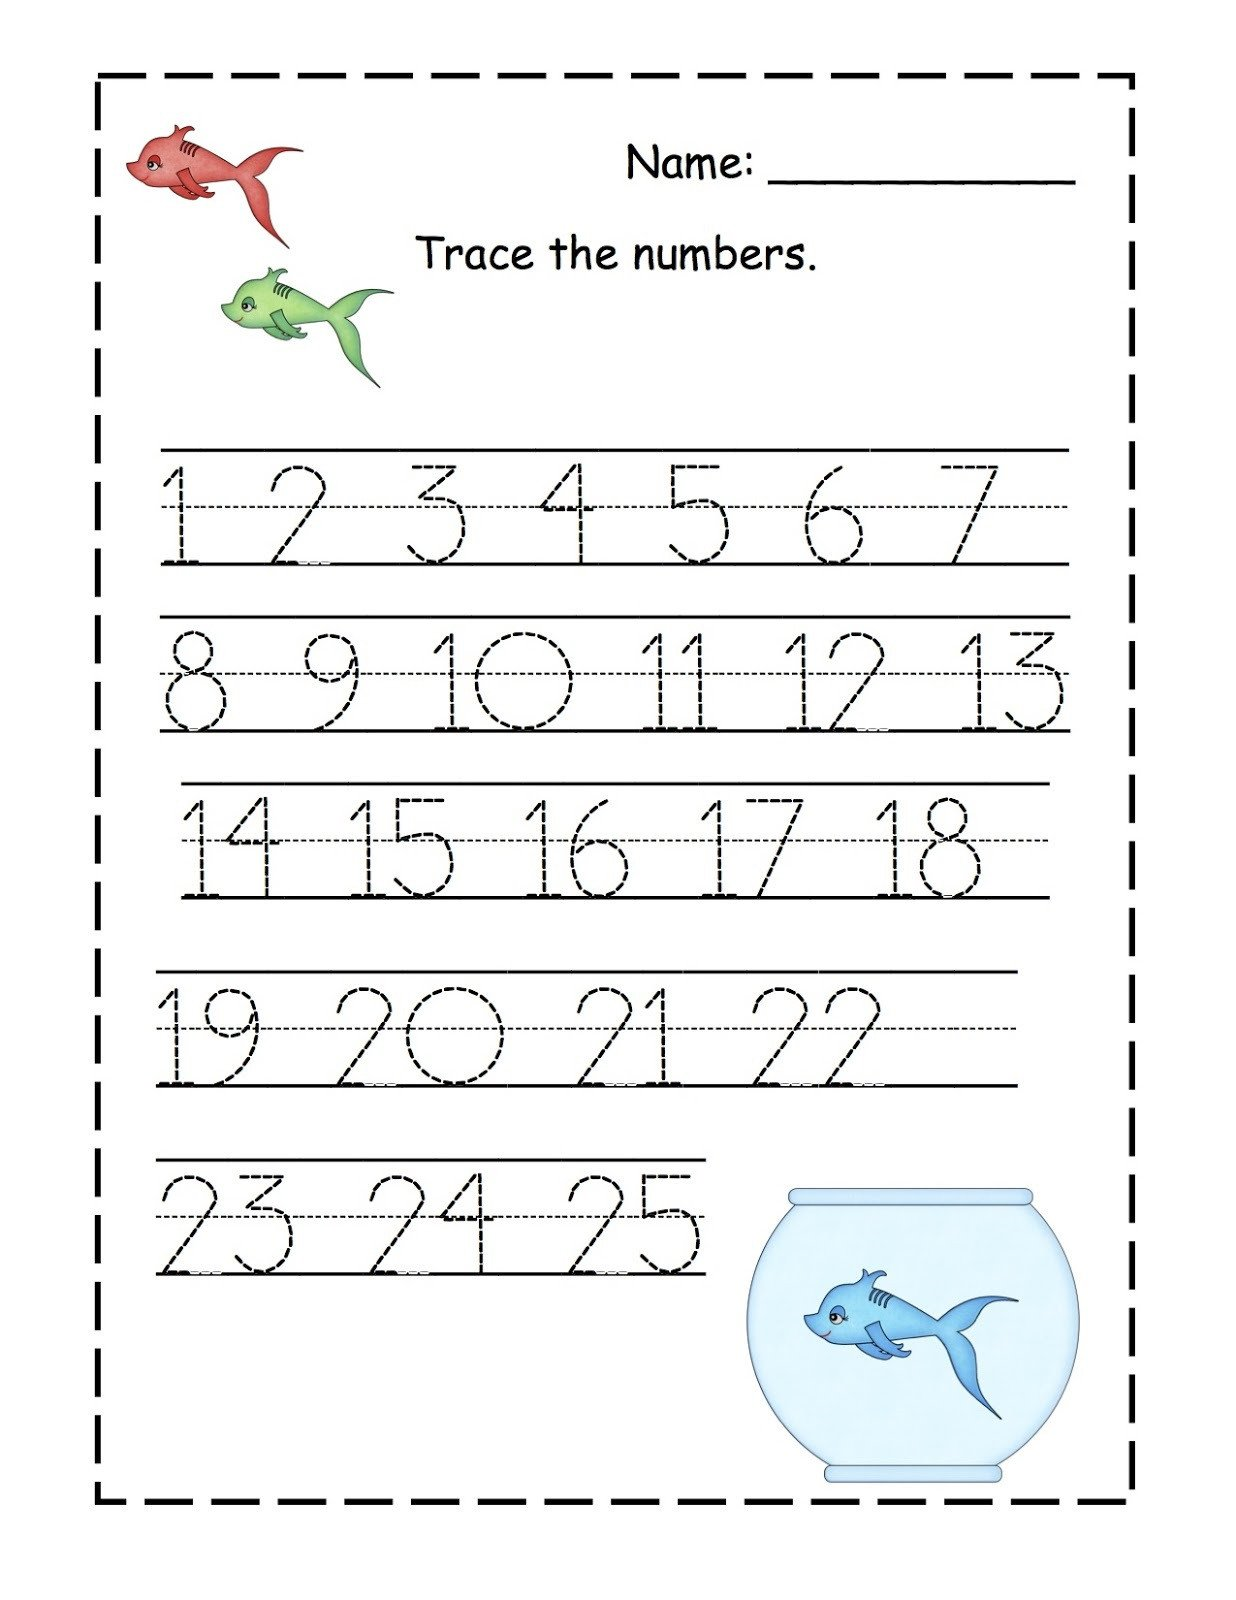 Tracing Numbers Worksheets 1 20 Trace Number 1 20 Worksheets